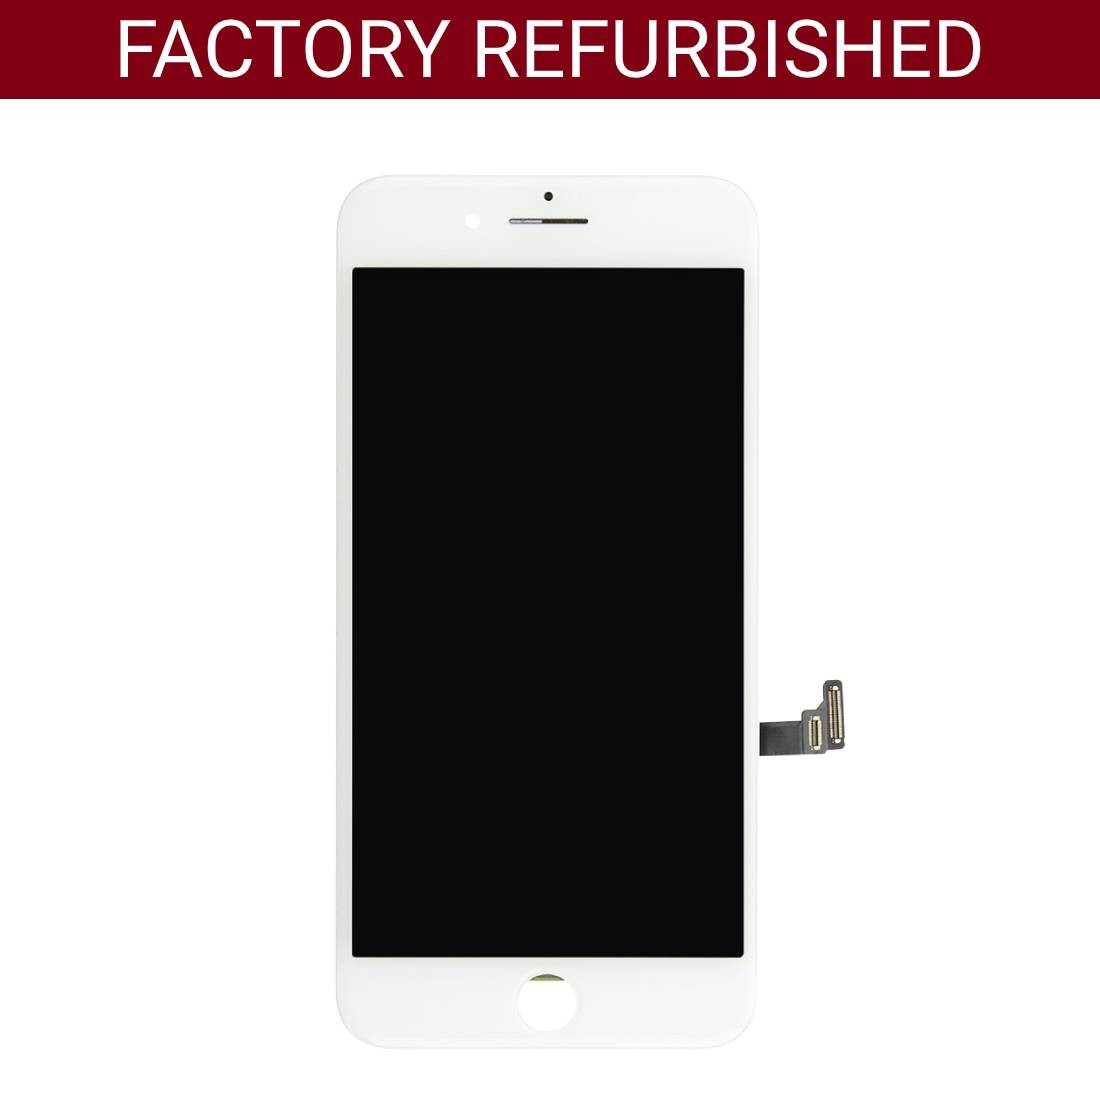 """Refurbished LCD Screen Replacement for iPhone 7 White 4.7"""""""